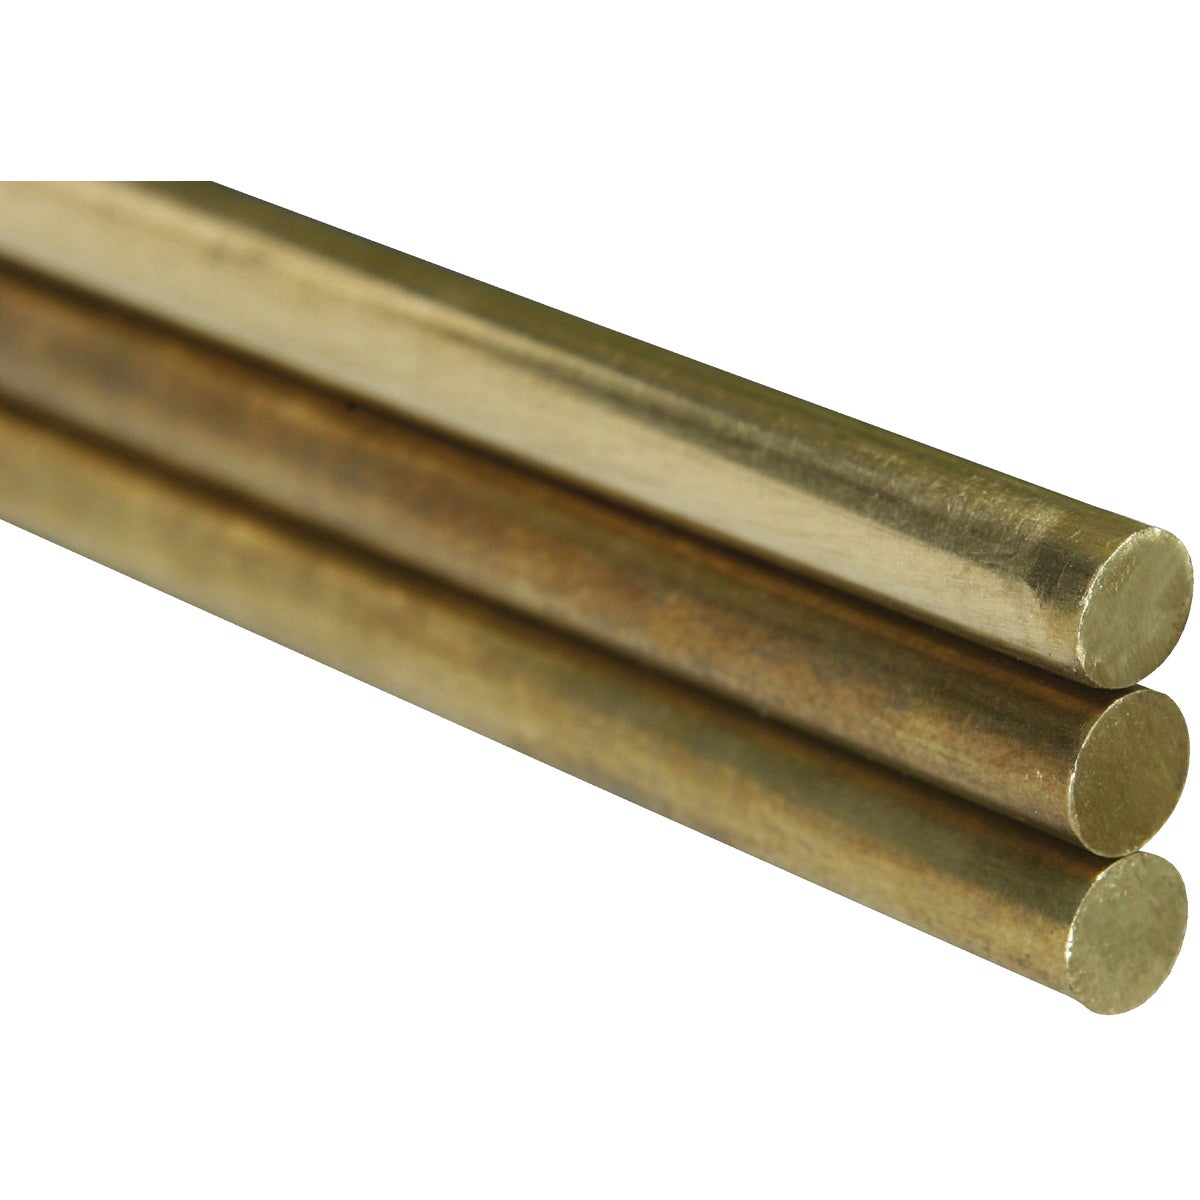 .114 .081 .072X12 BR ROD - 8158 by K&s Precision Metals